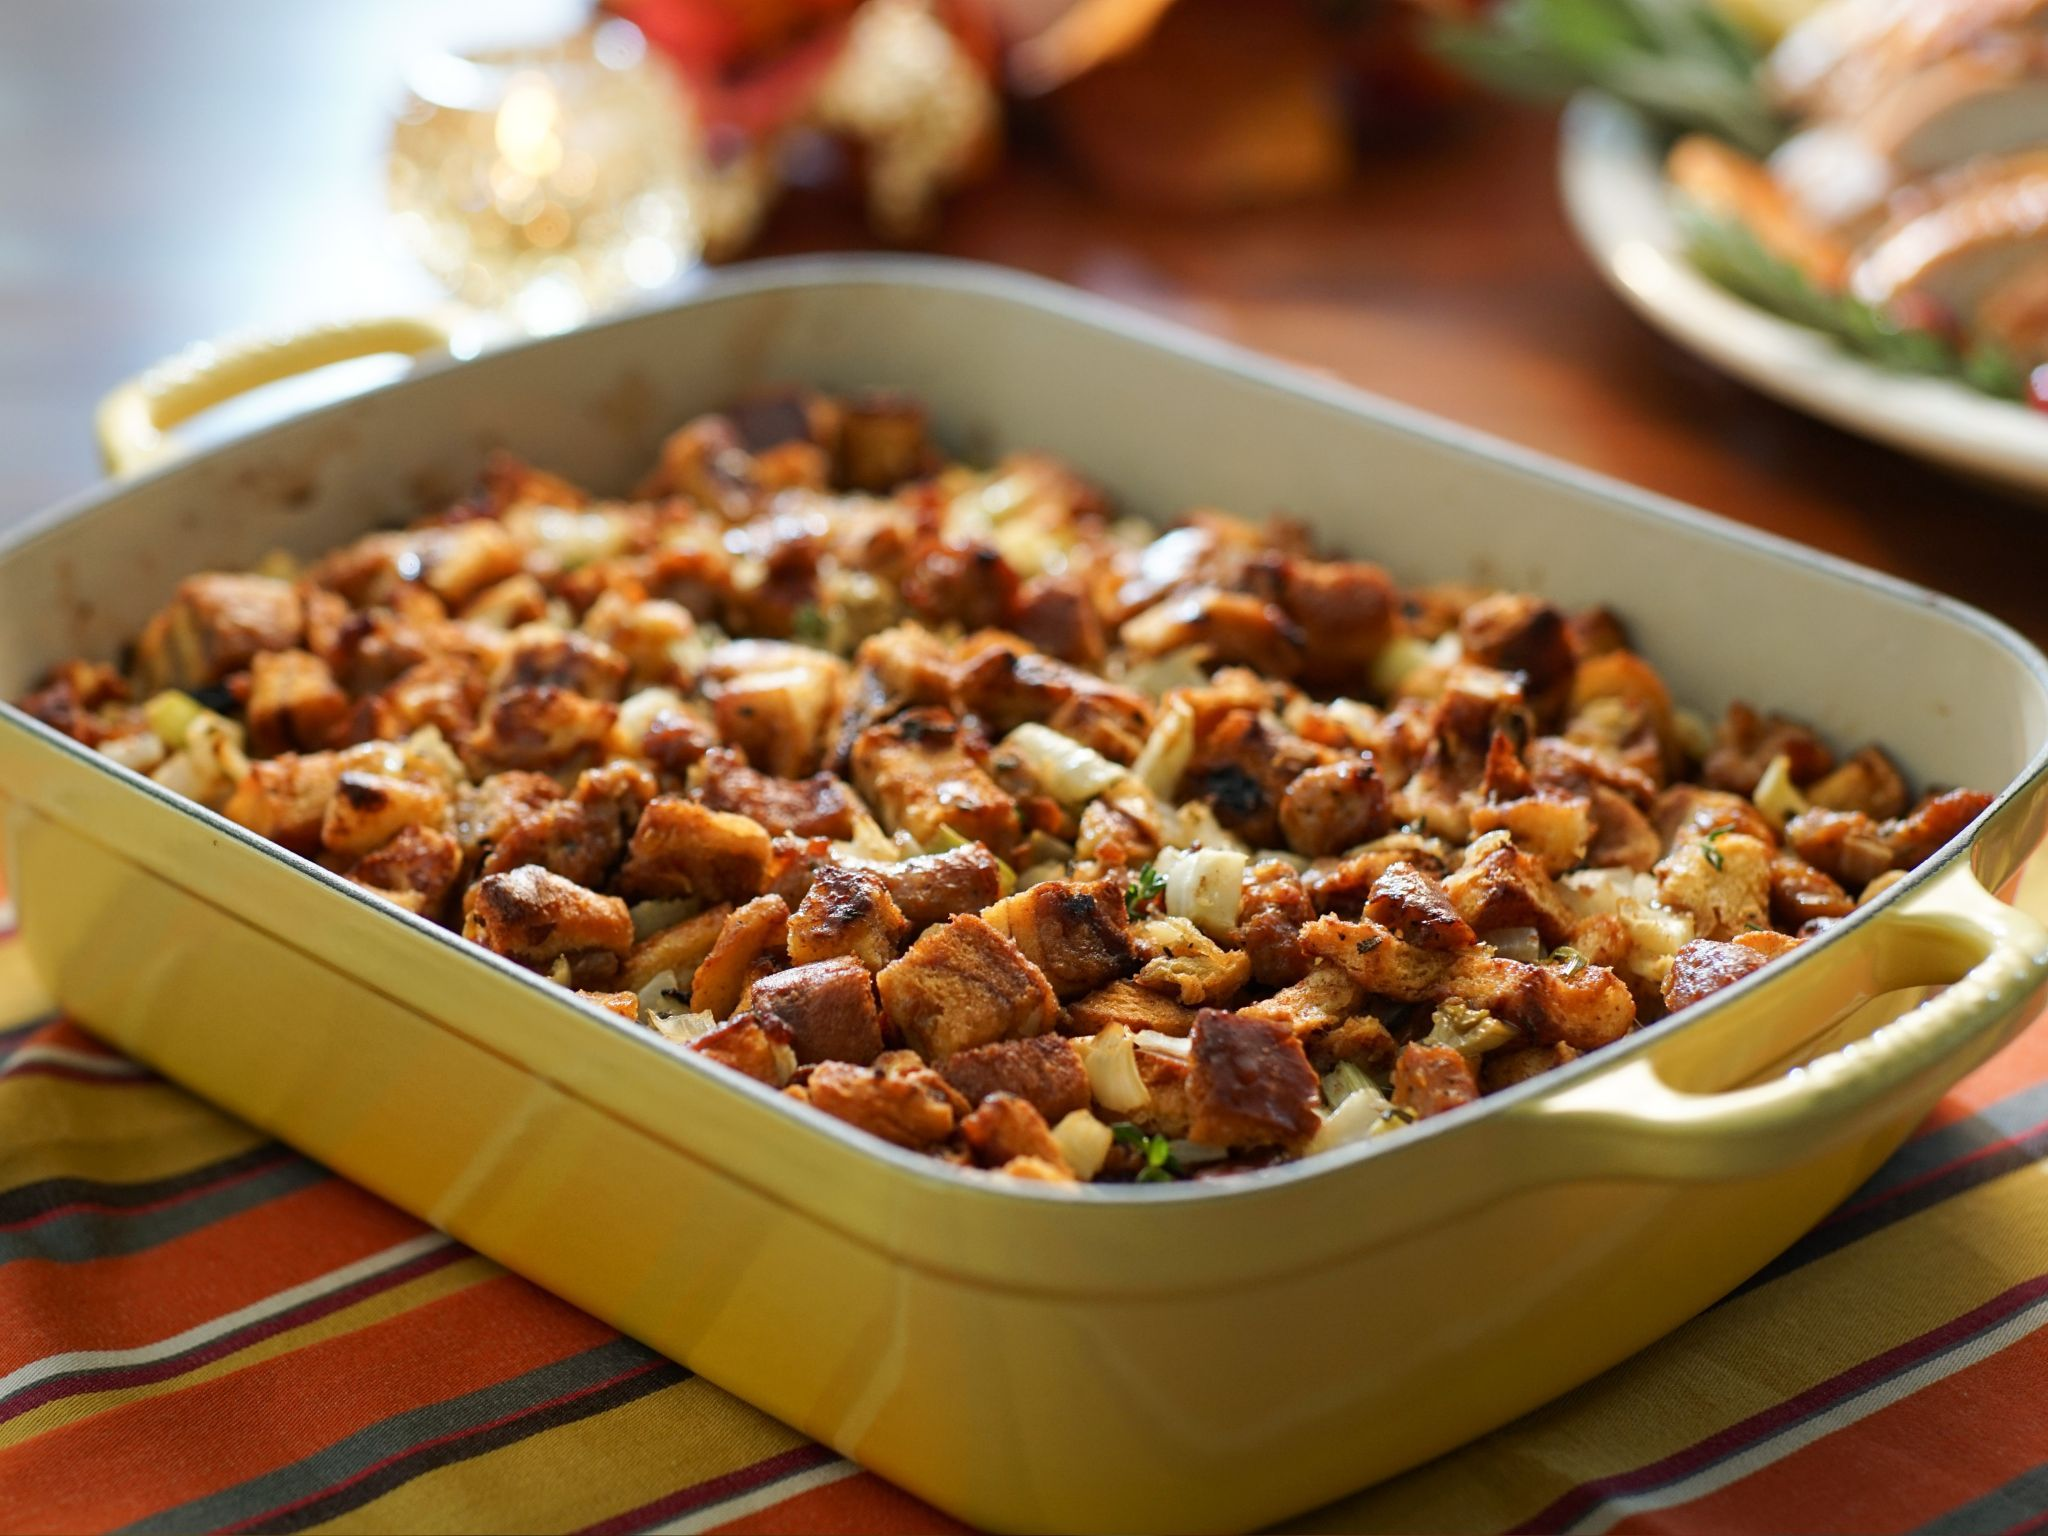 Cinnamon raisin bread stuffing with sausage recipe valerie cinnamon raisin bread stuffing with sausage recipe valerie bertinelli cinnamon raisin bread and raisin bread forumfinder Choice Image